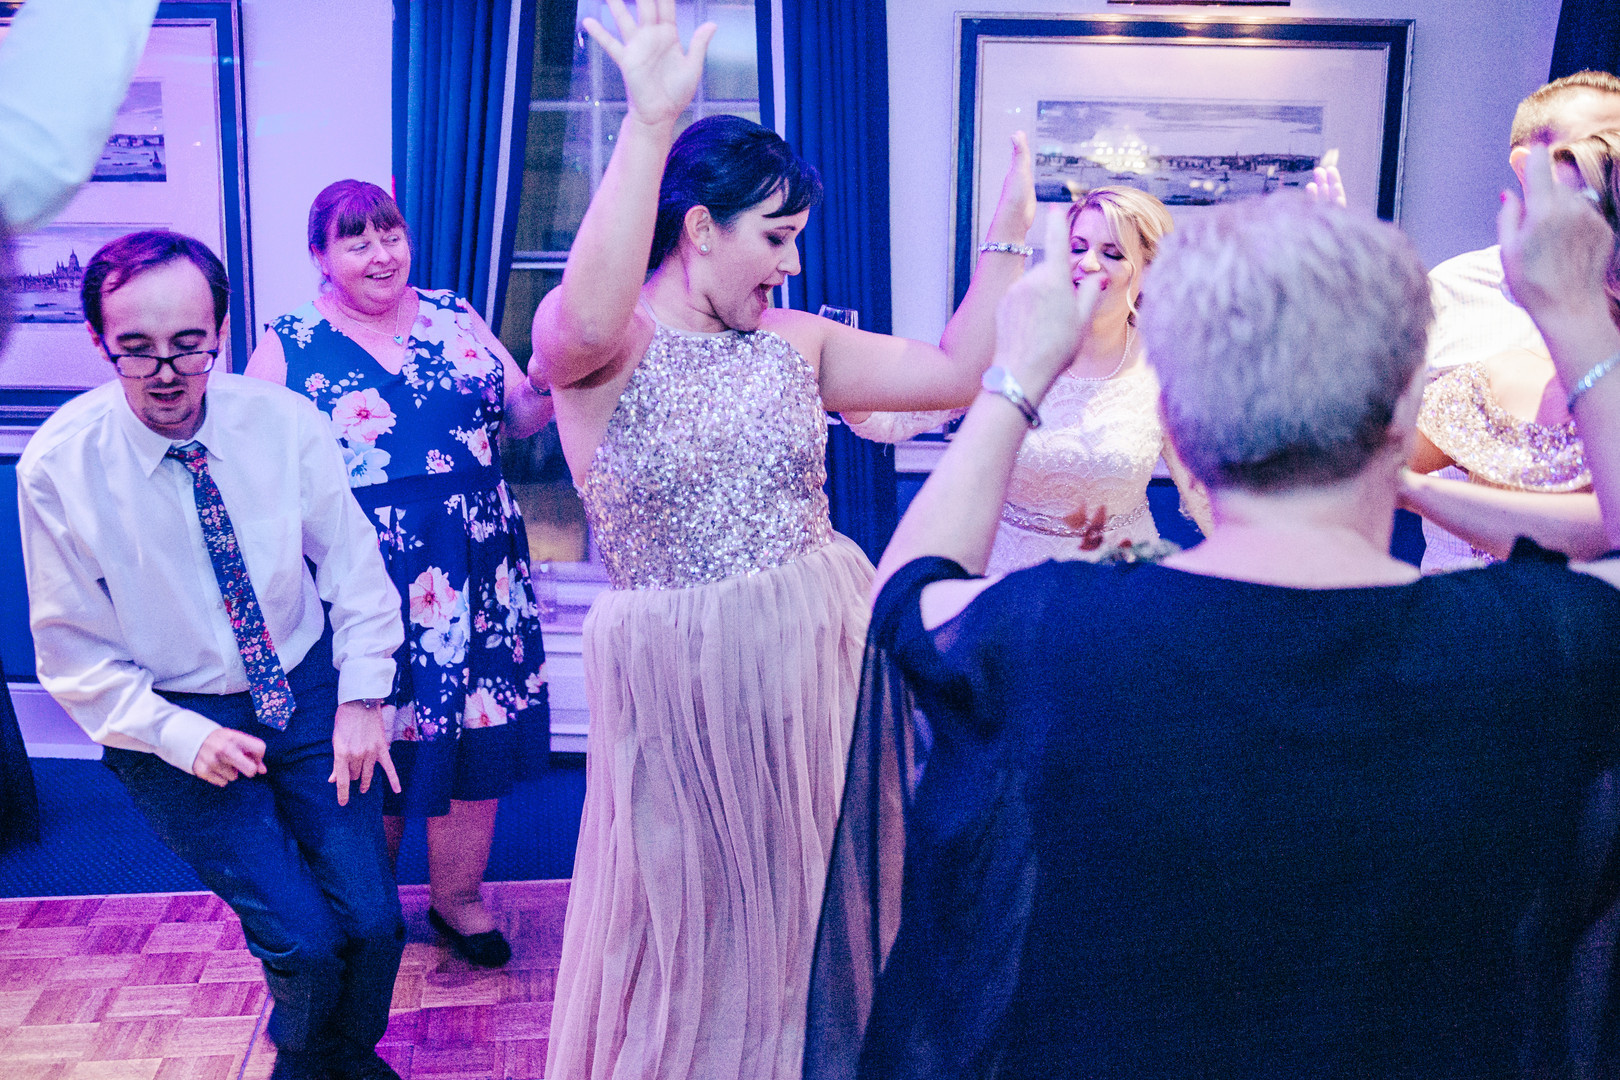 Fun dancing photo at wedding reception Chesterfield Hotel London